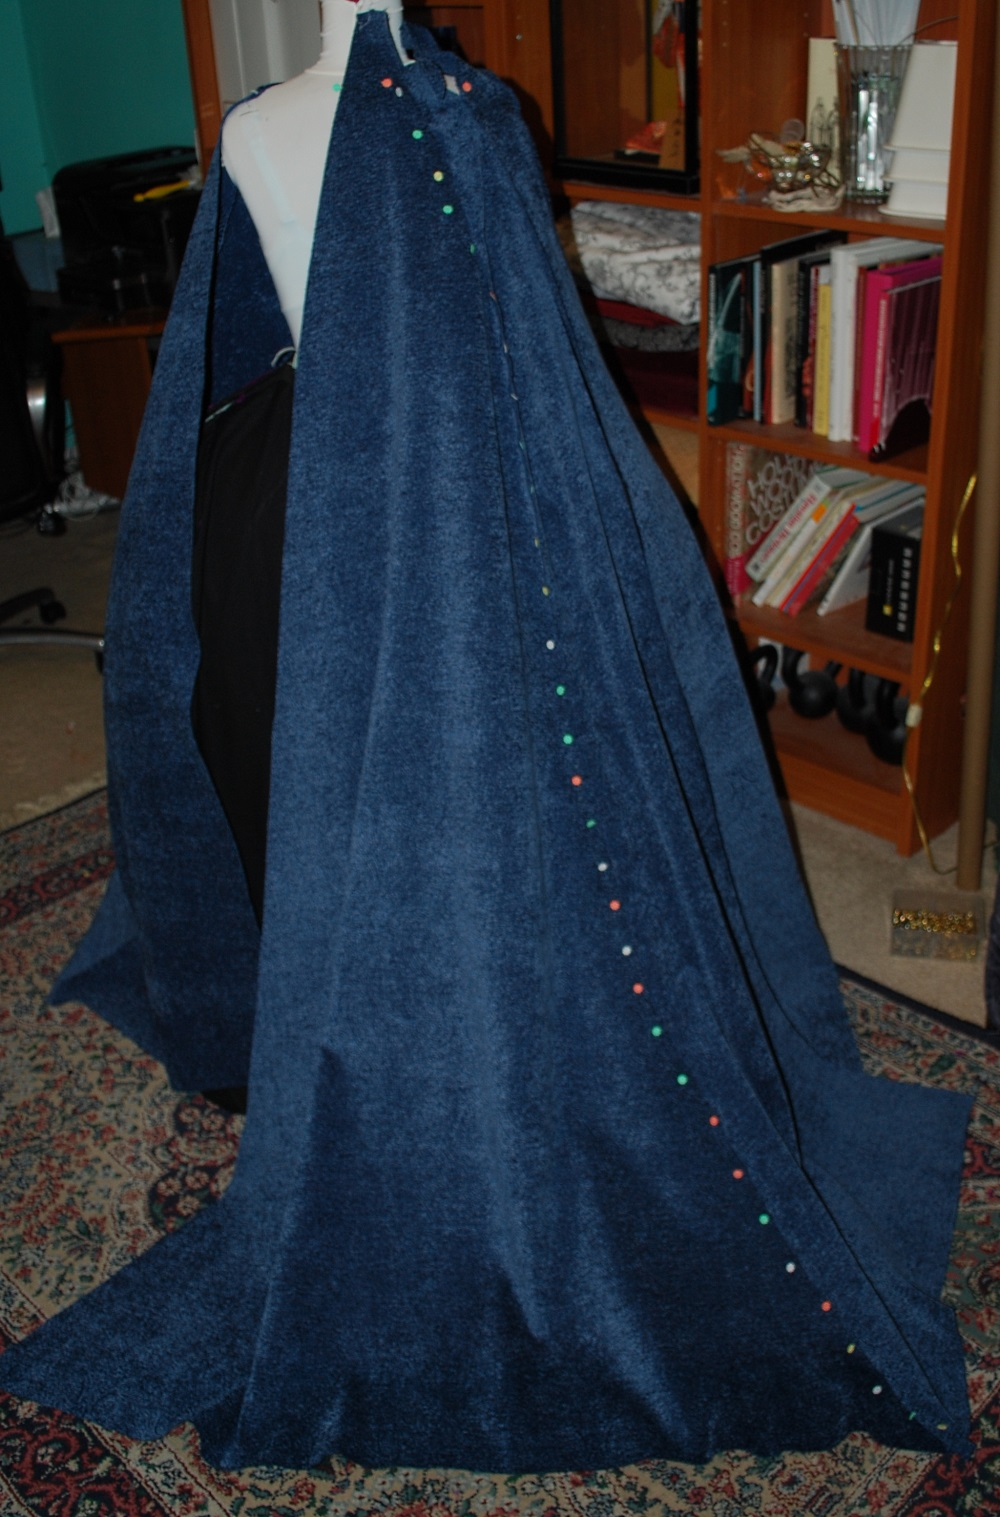 jeweled-ermine-royal-cloak-7